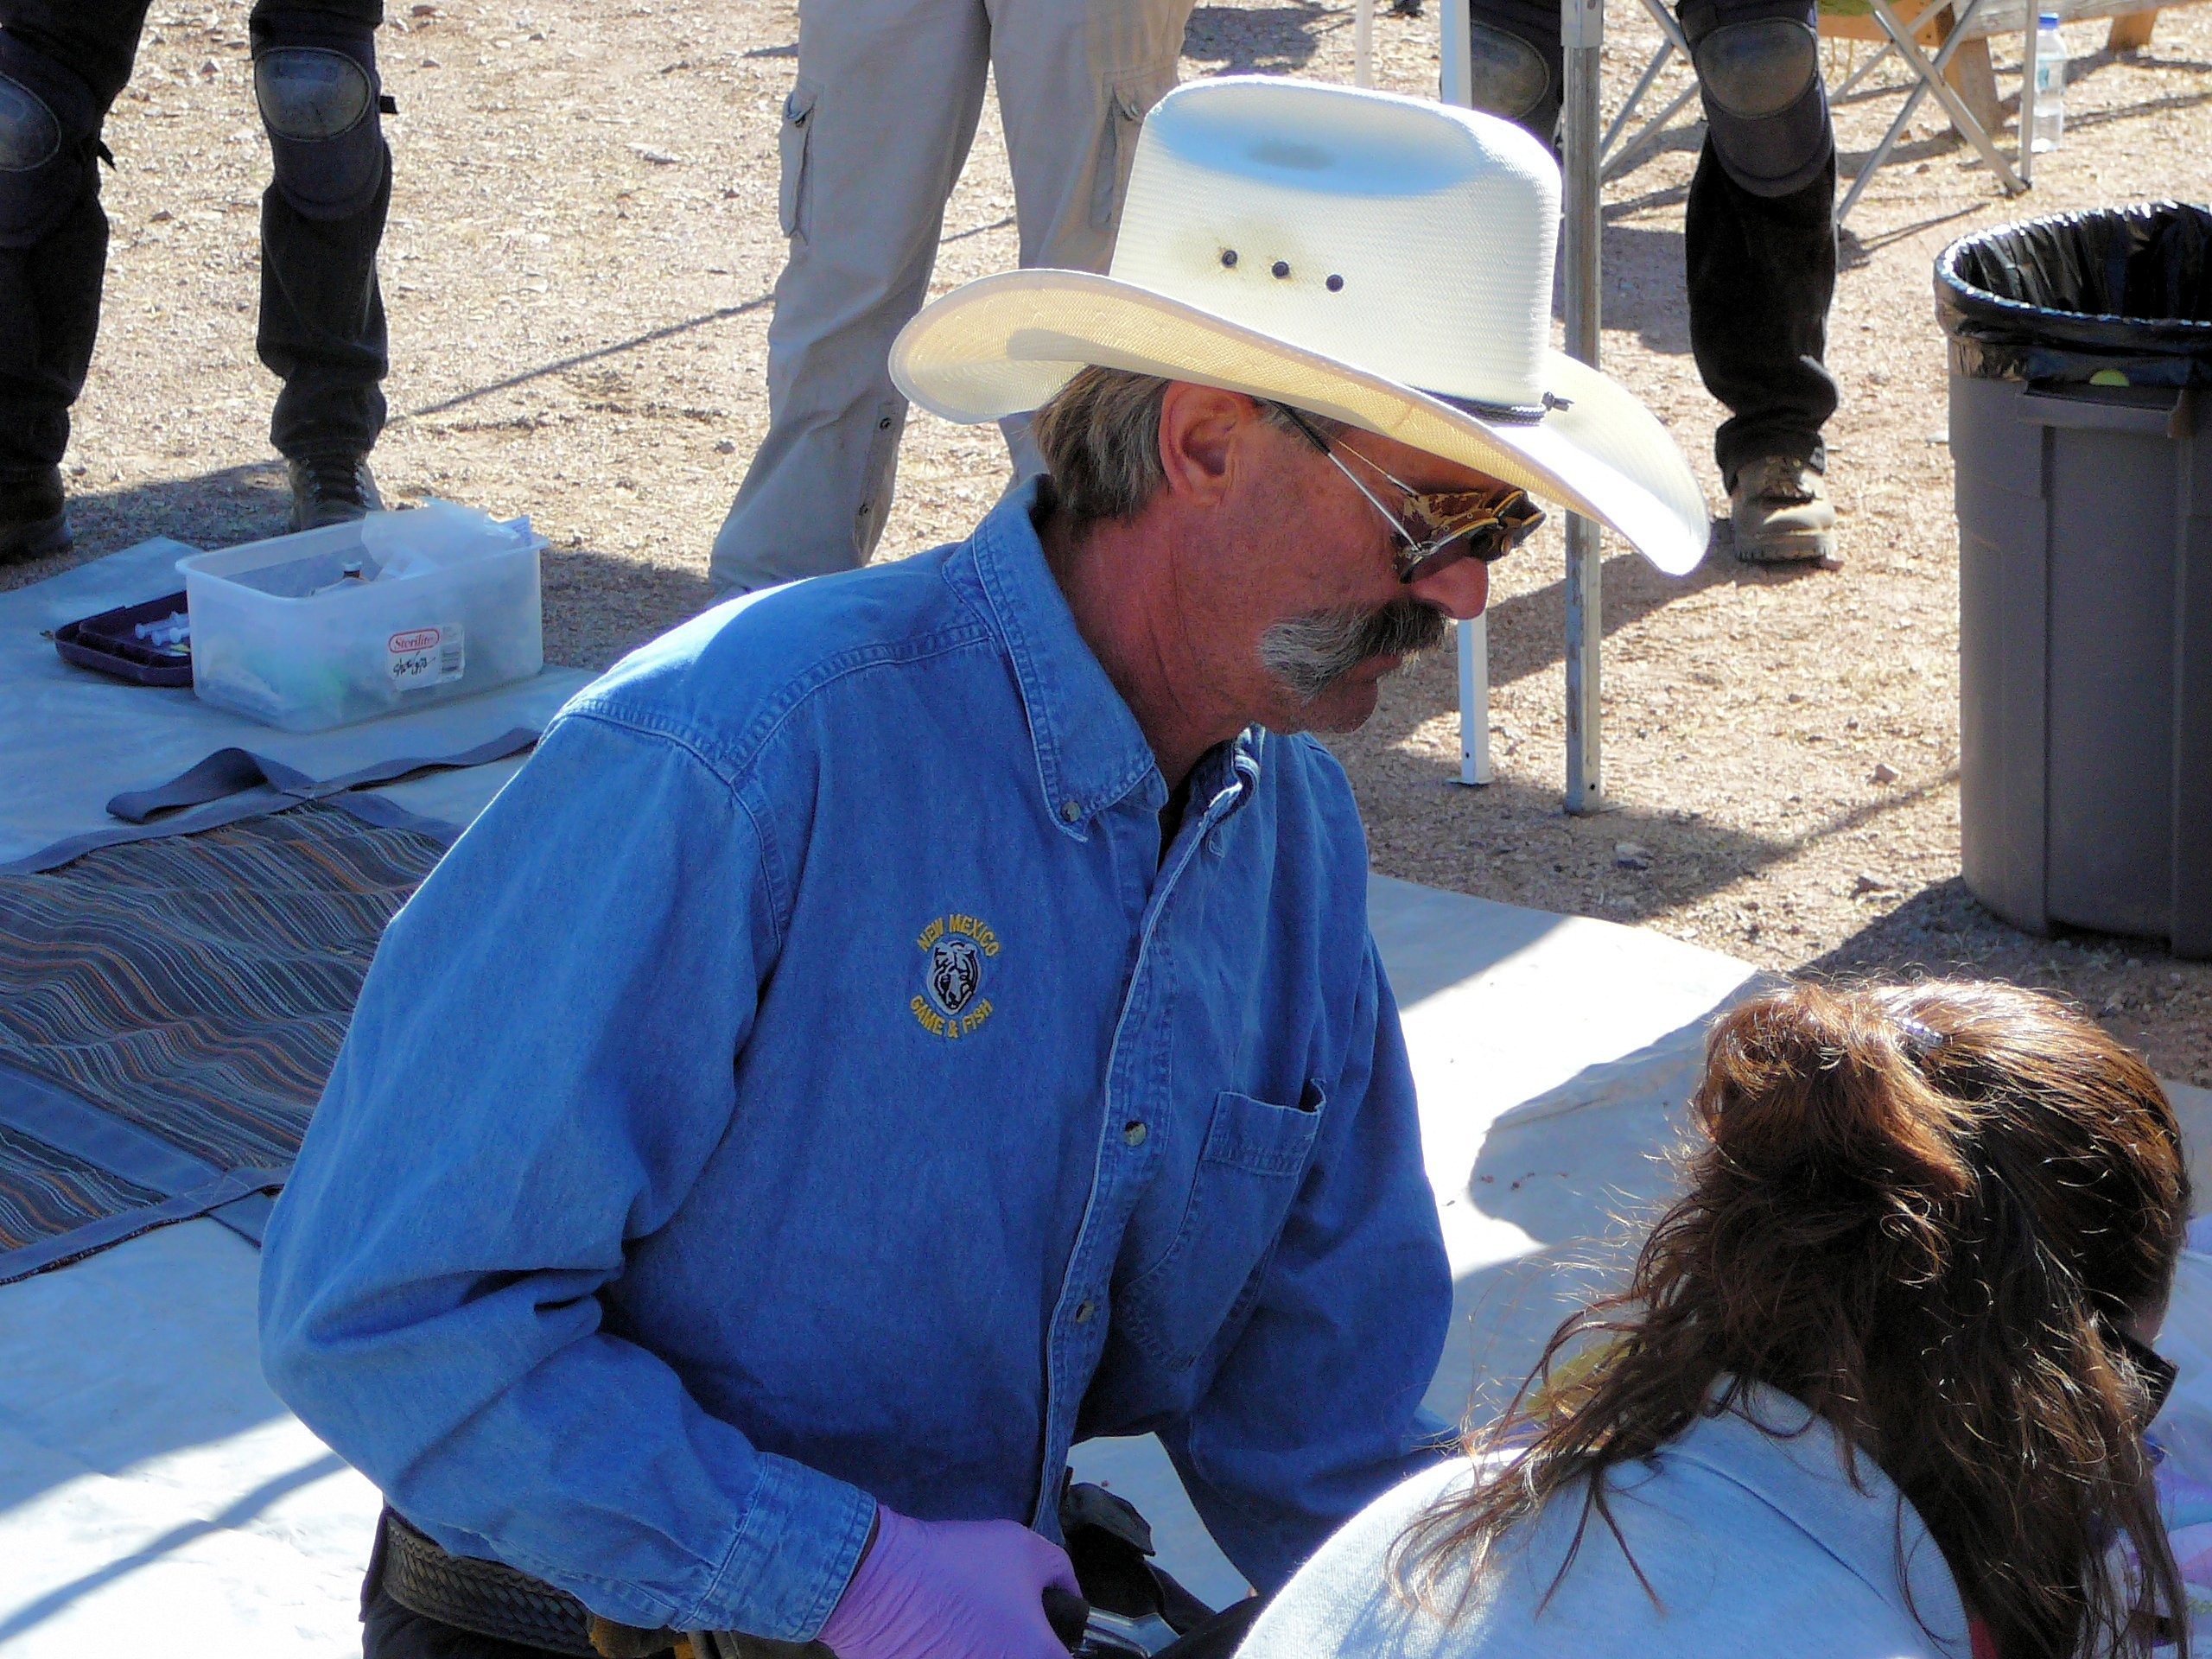 WILD SHEEP FOUNDATION INDUCTS NEW MEXICO WILD SHEEP BIOLOGIST INTO WALL OF FAME AND PRESENTS NEVADA WILDLIFE VETERINARIAN WITH STATE STATESMAN AWARD